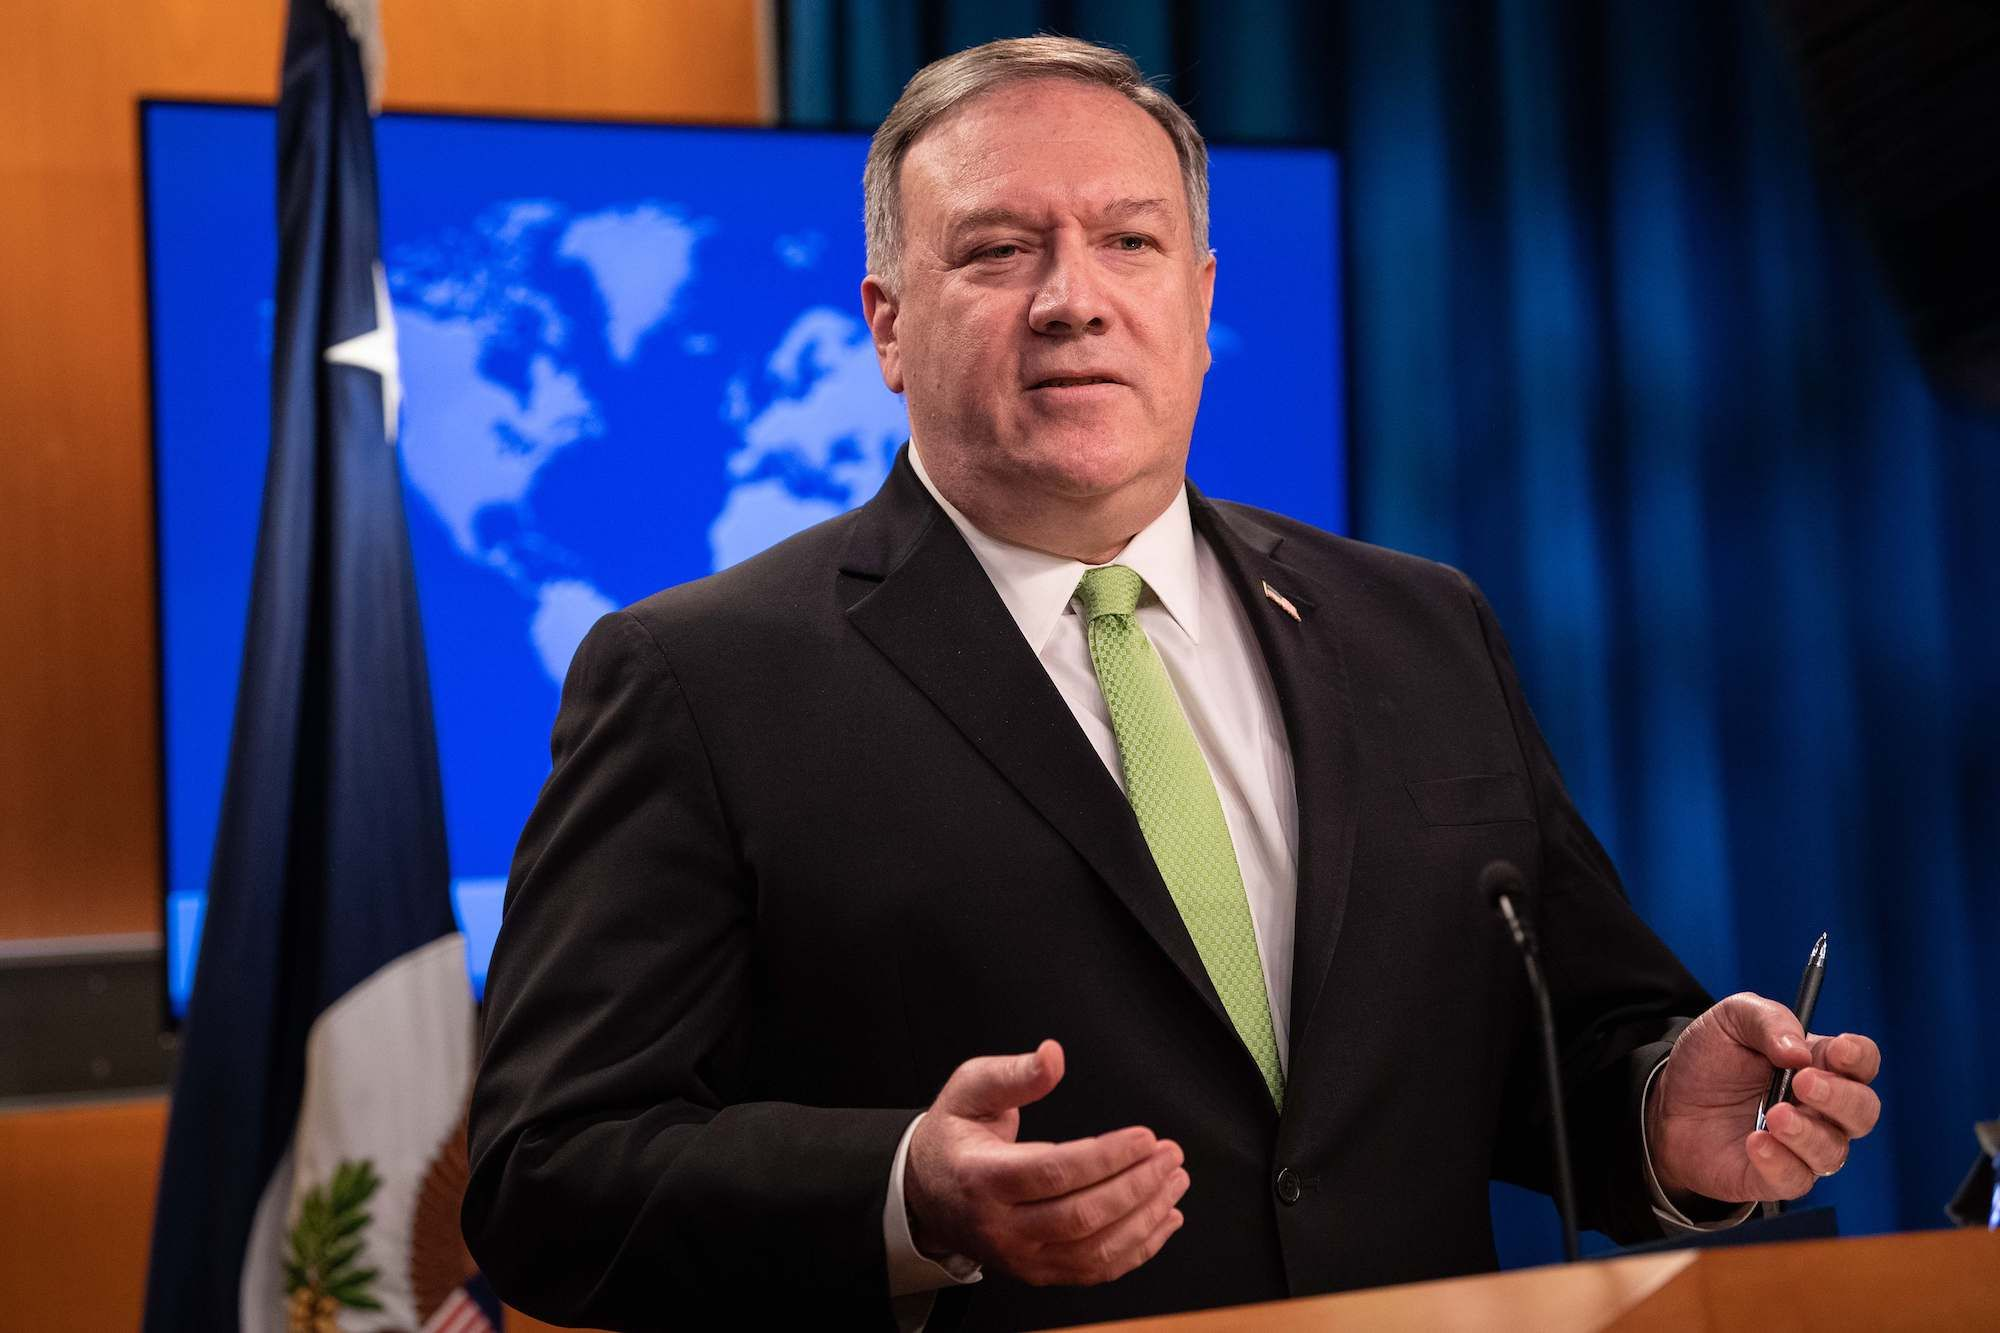 Mike Pompeo Won't Comment on Personnel Matters. Except the Inspector General—That Guy Sucked!